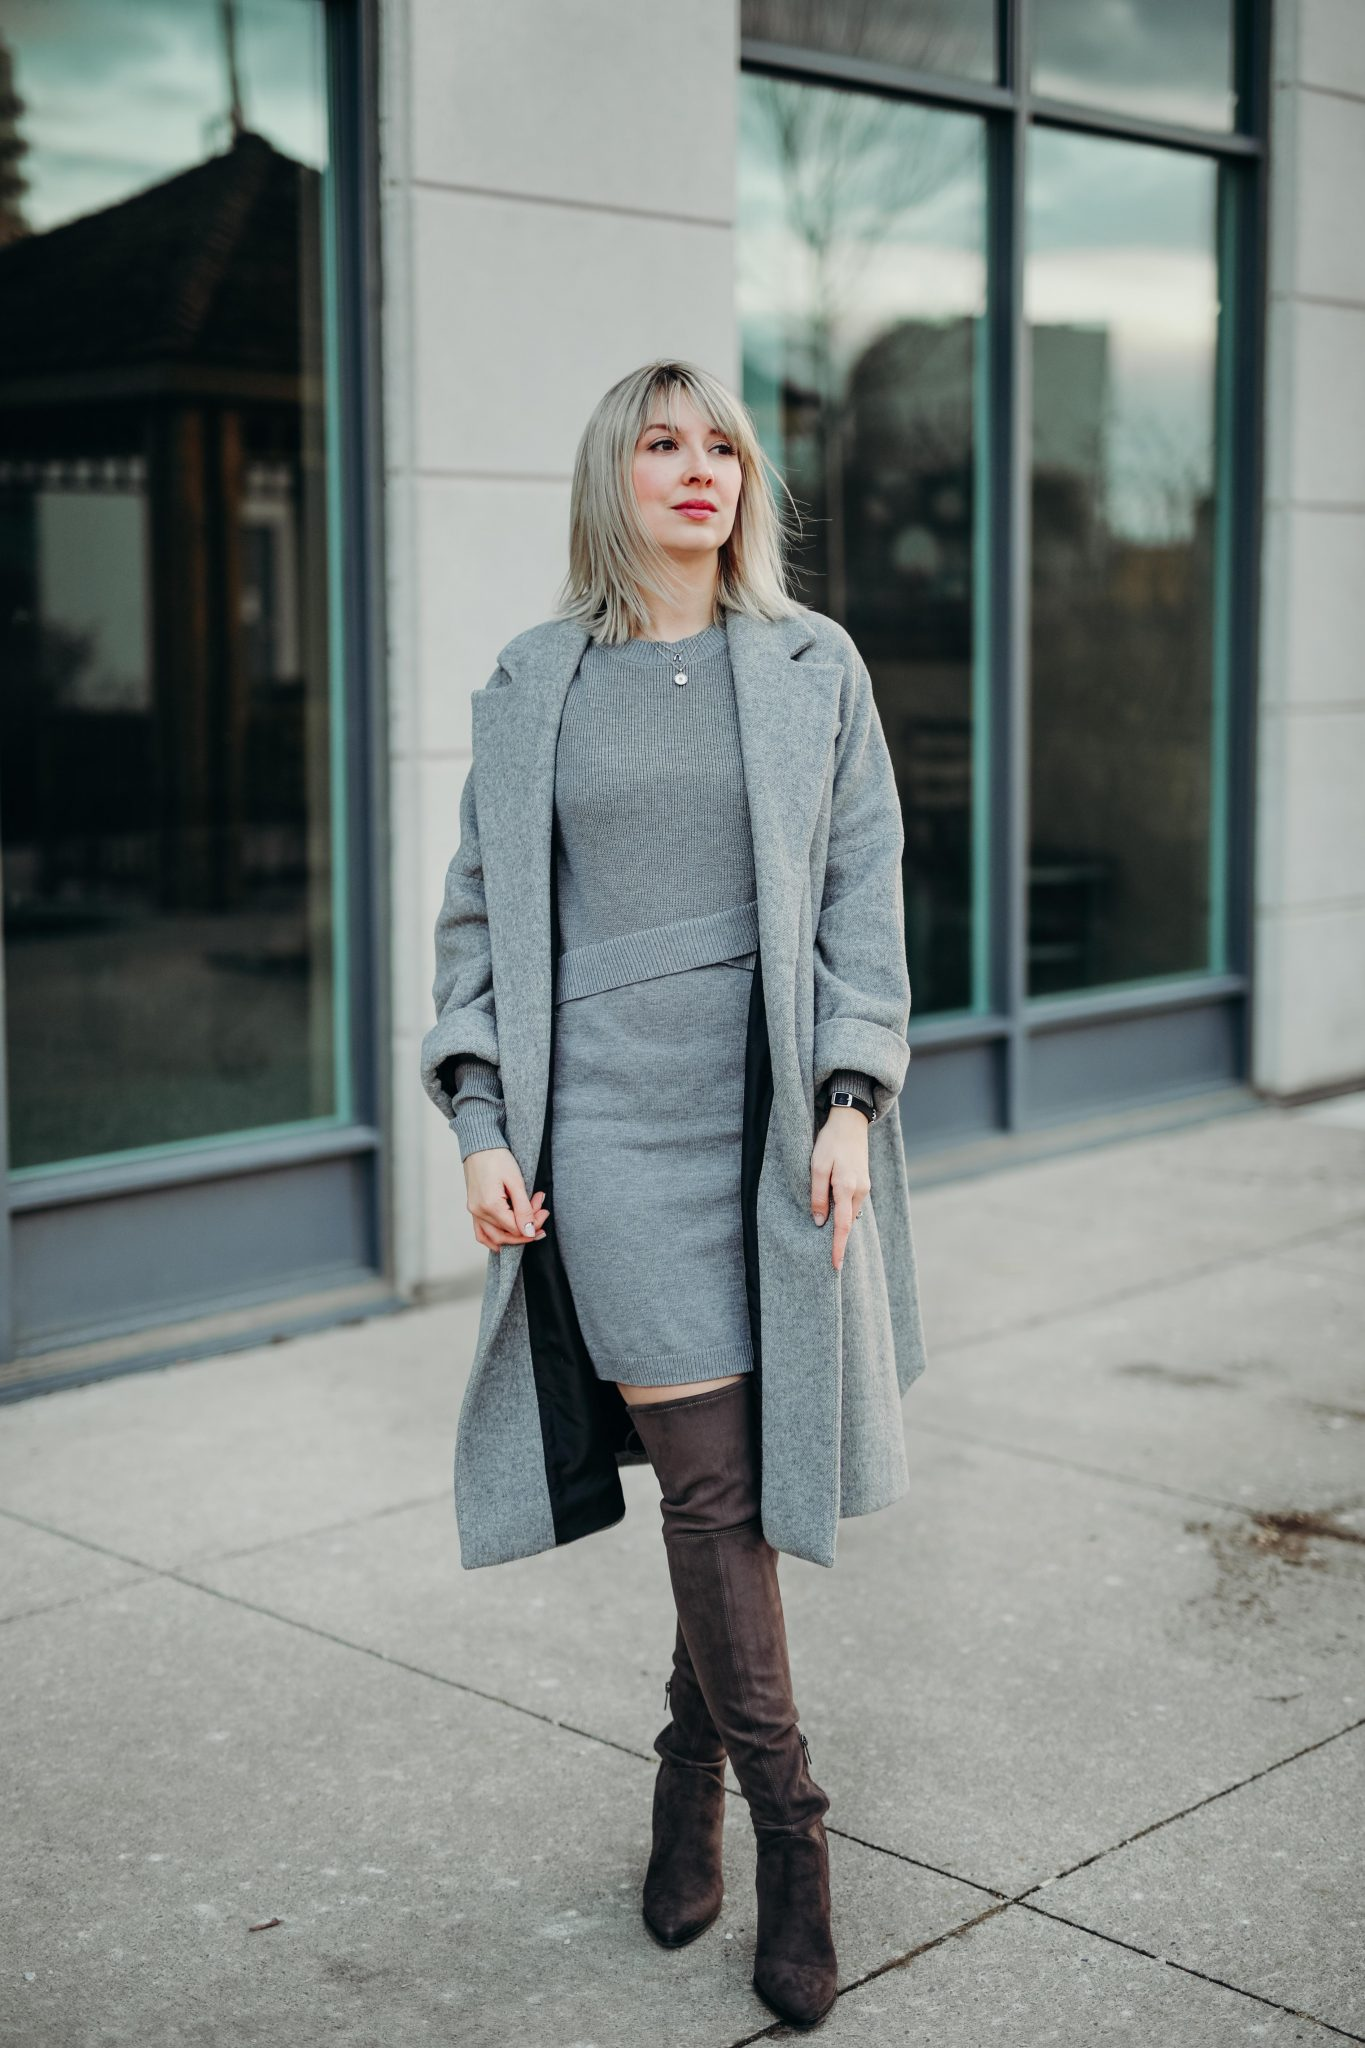 grey knit dress & long coat (6 of 10)